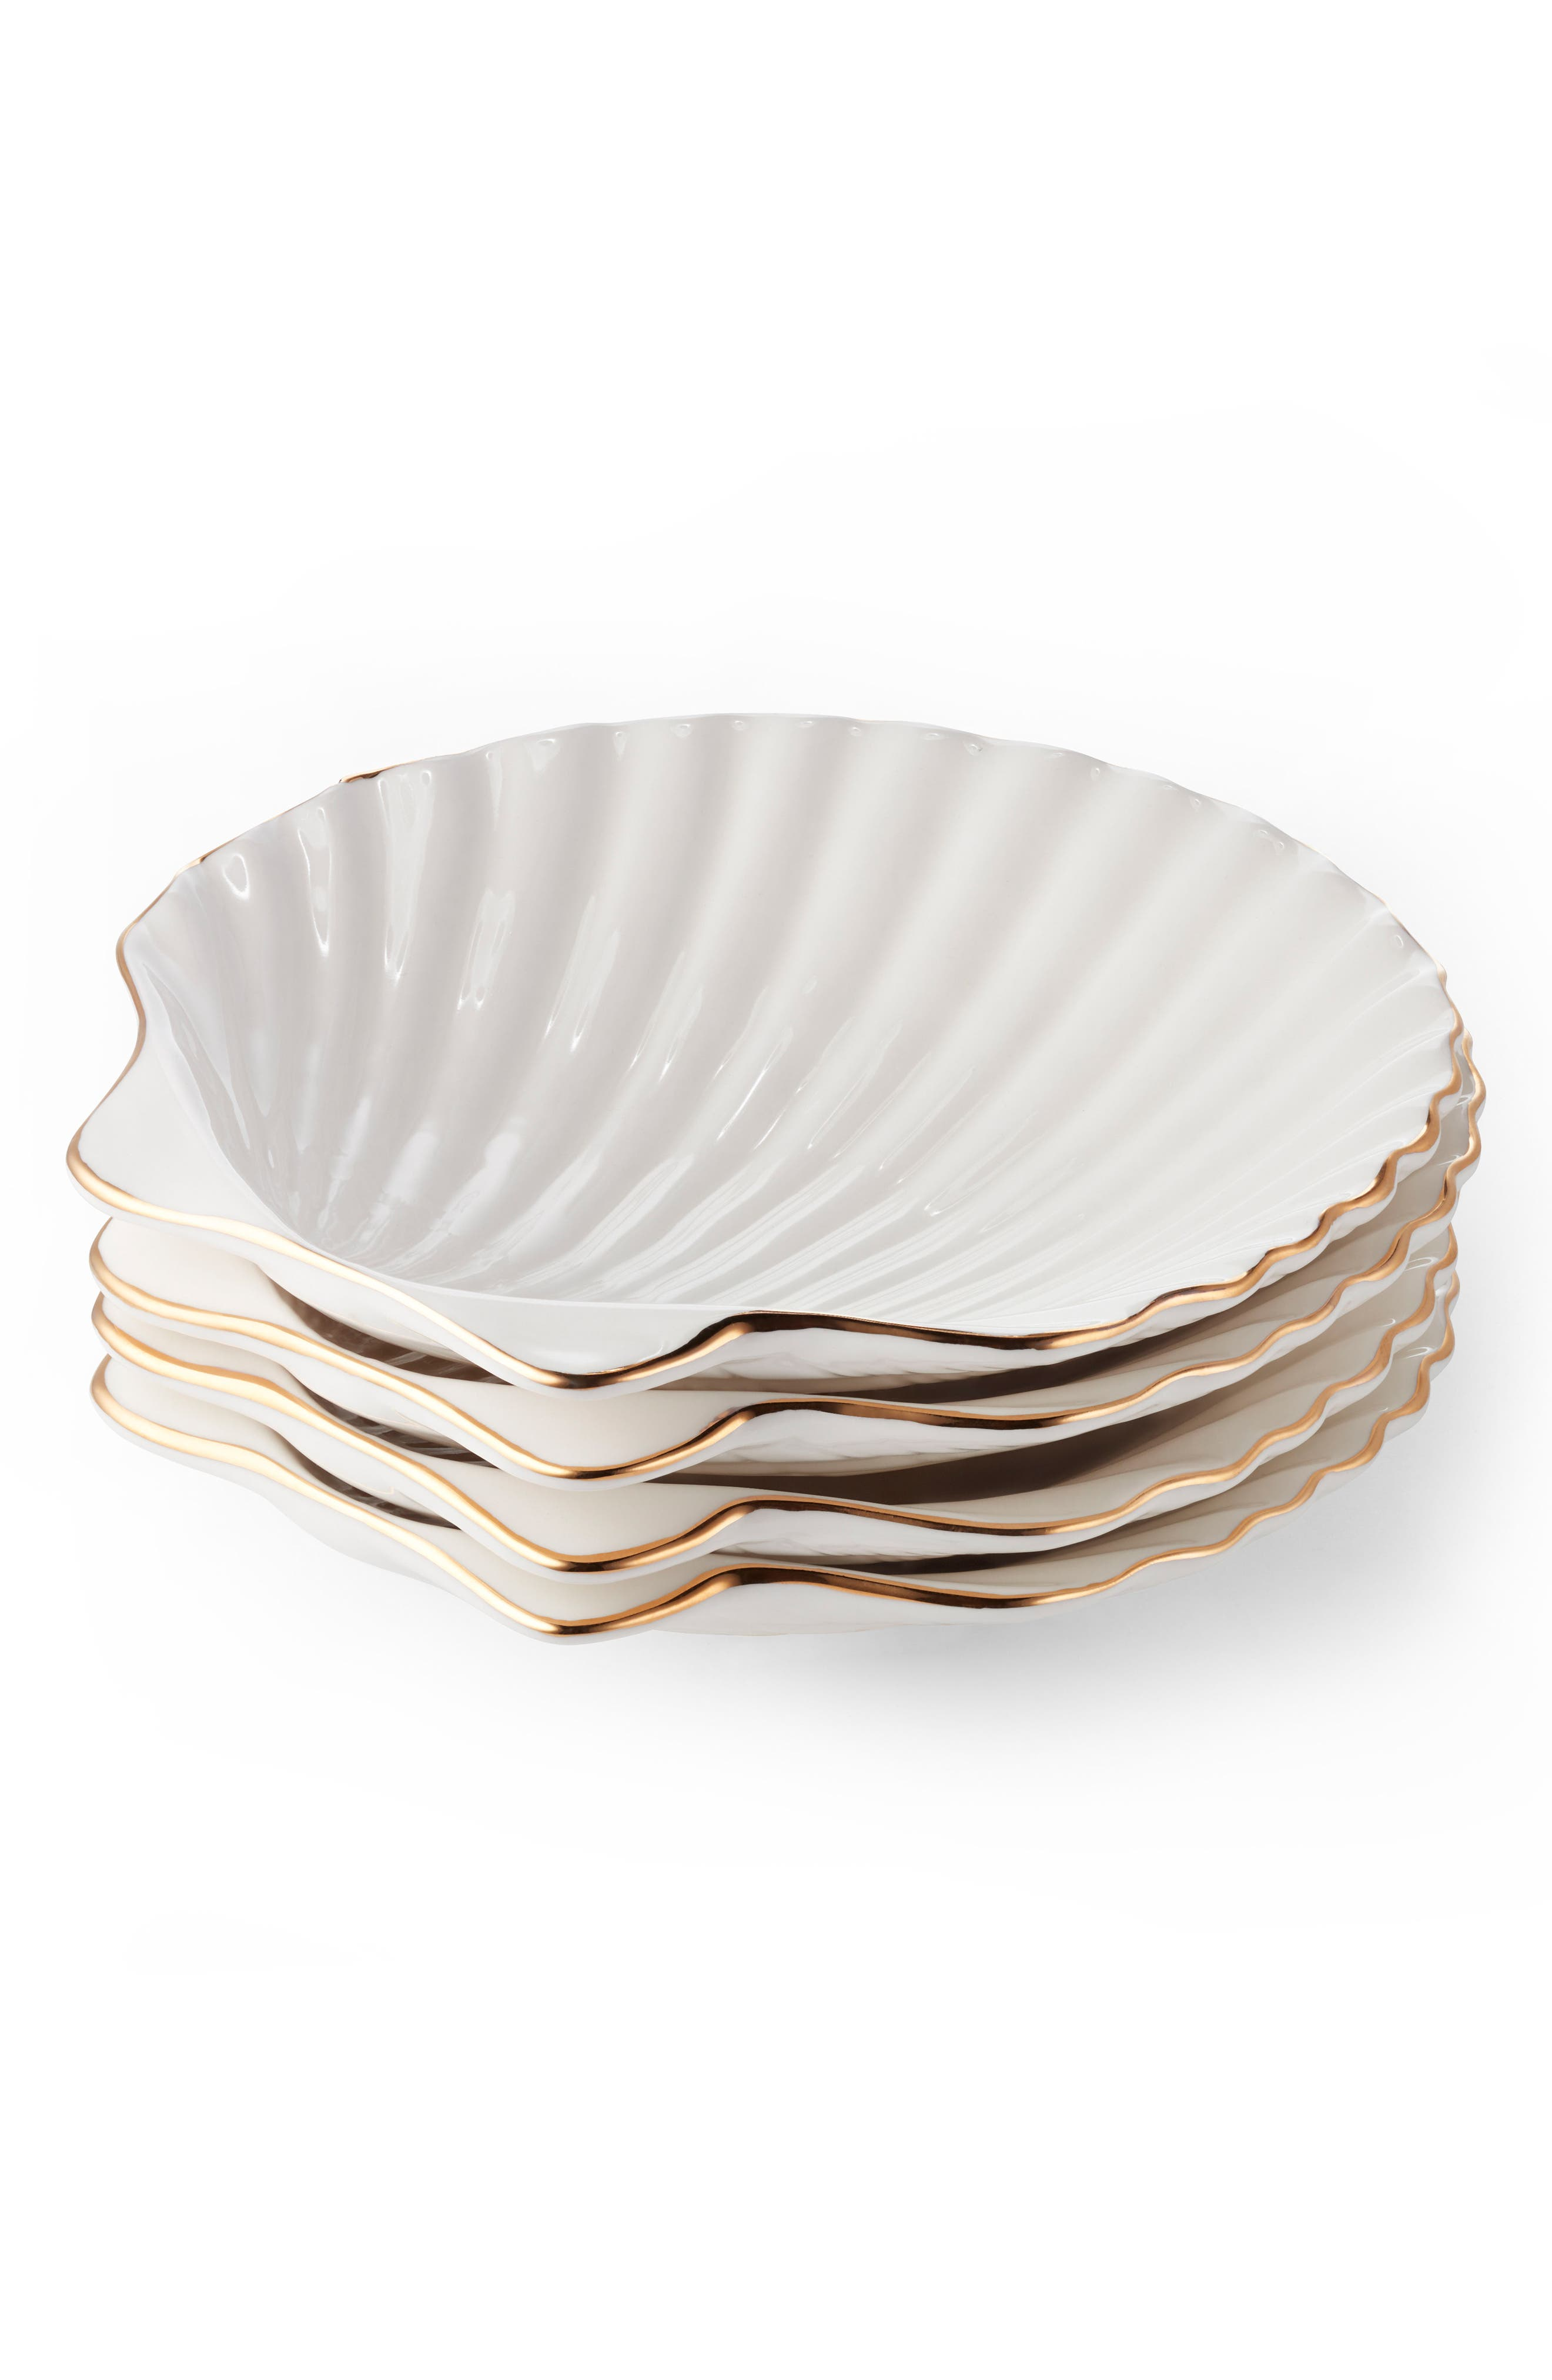 AERIN,                             Set of 4 Shell Appetizer Plates,                             Main thumbnail 1, color,                             100